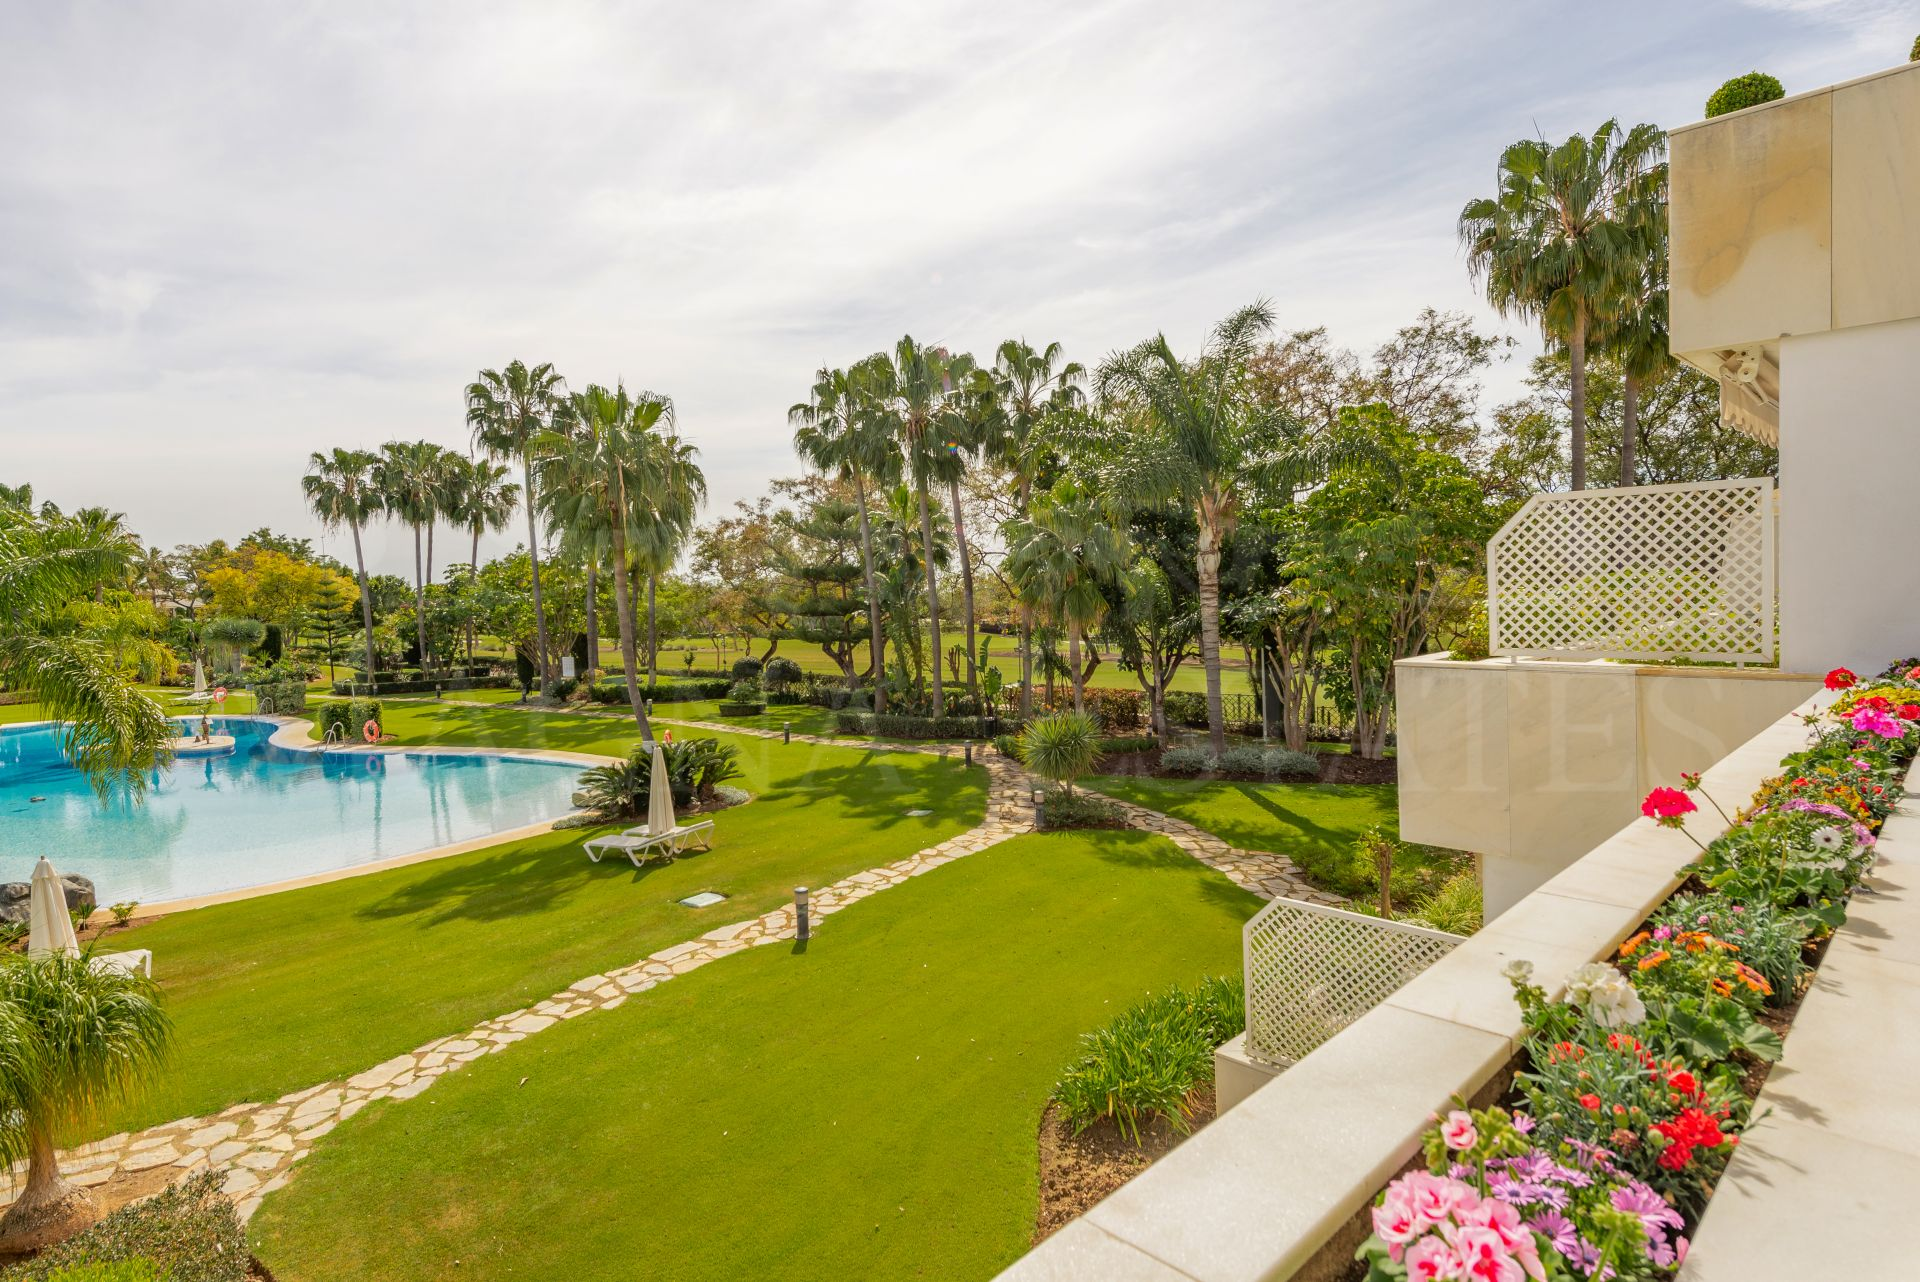 Renovated and furnished apartment in Los Granados Golf, Nueva Andalucía, Marbella